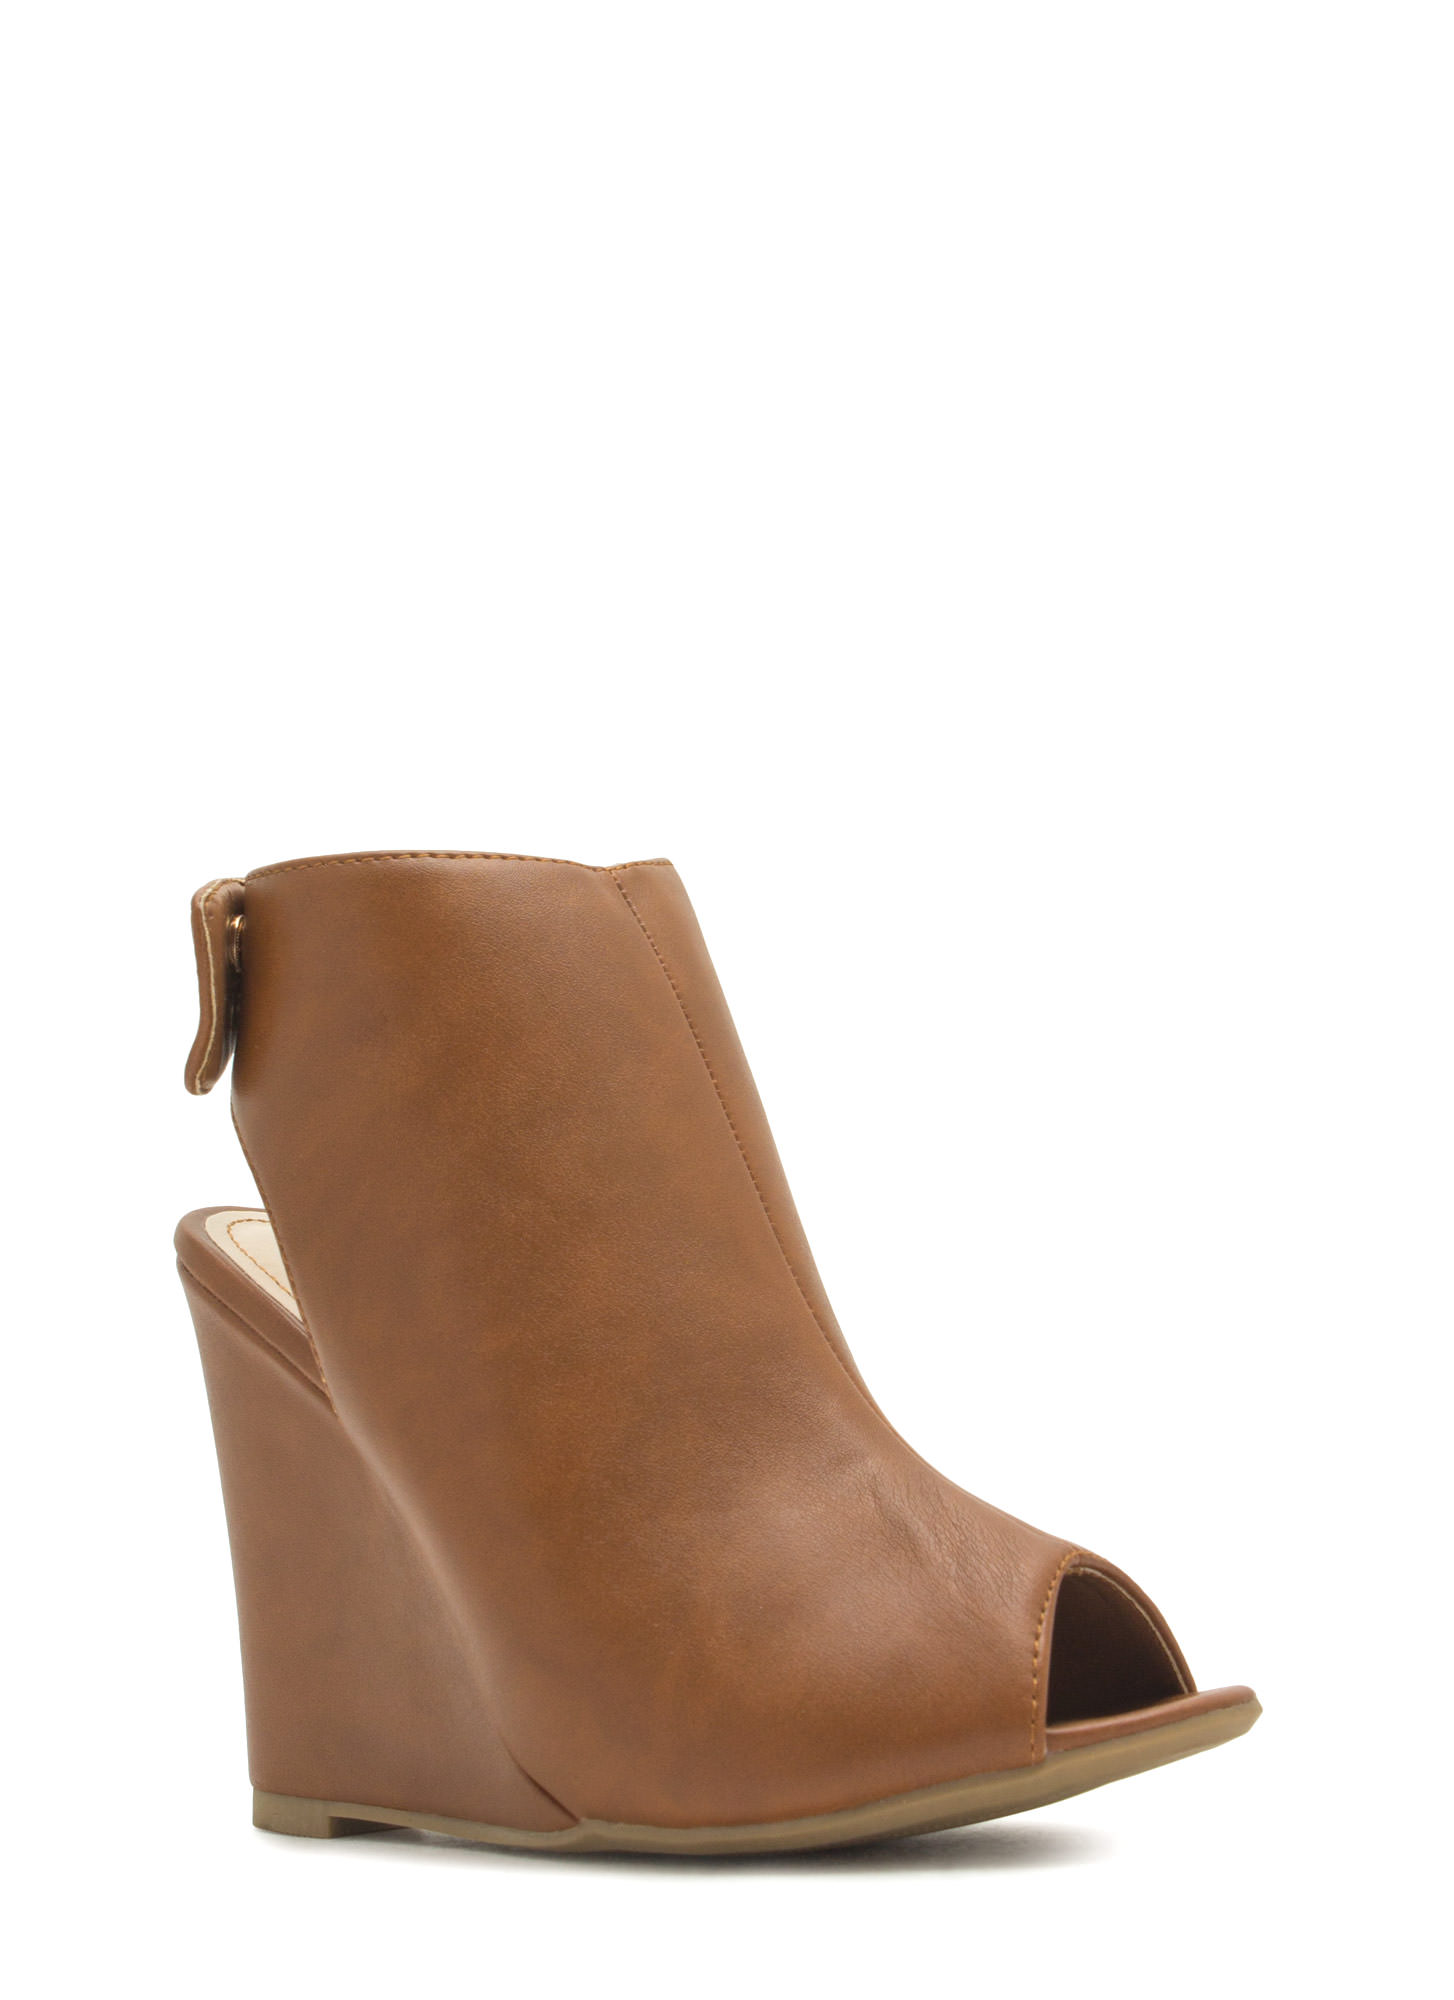 Haute 'N Chic Faux Leather Wedge Booties CHESTNUT